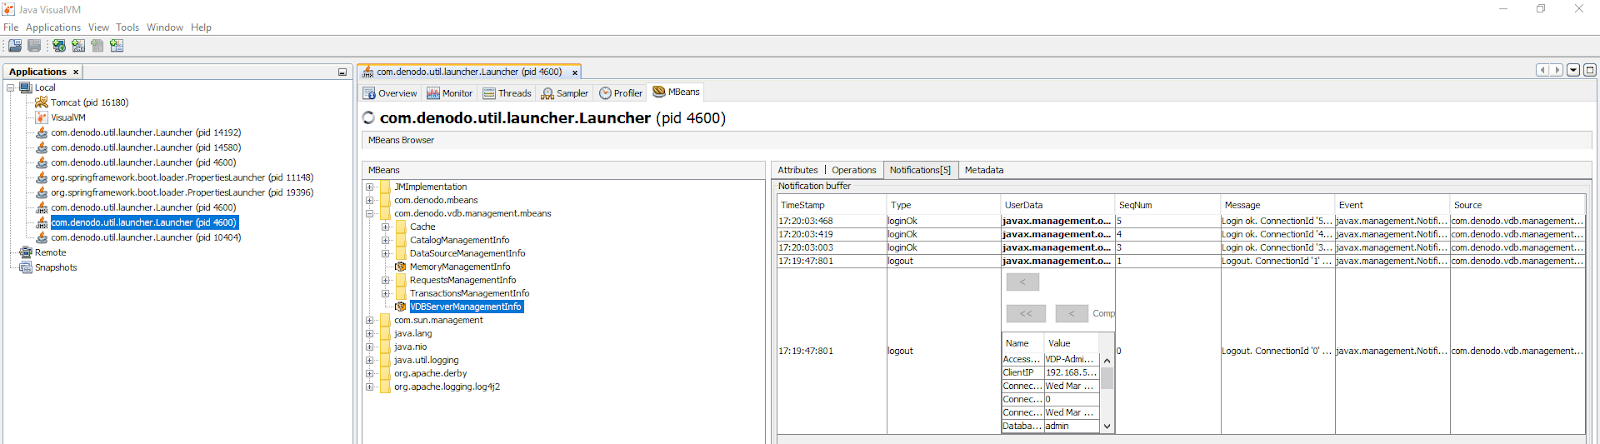 Auditing User Access in Virtual DataPort